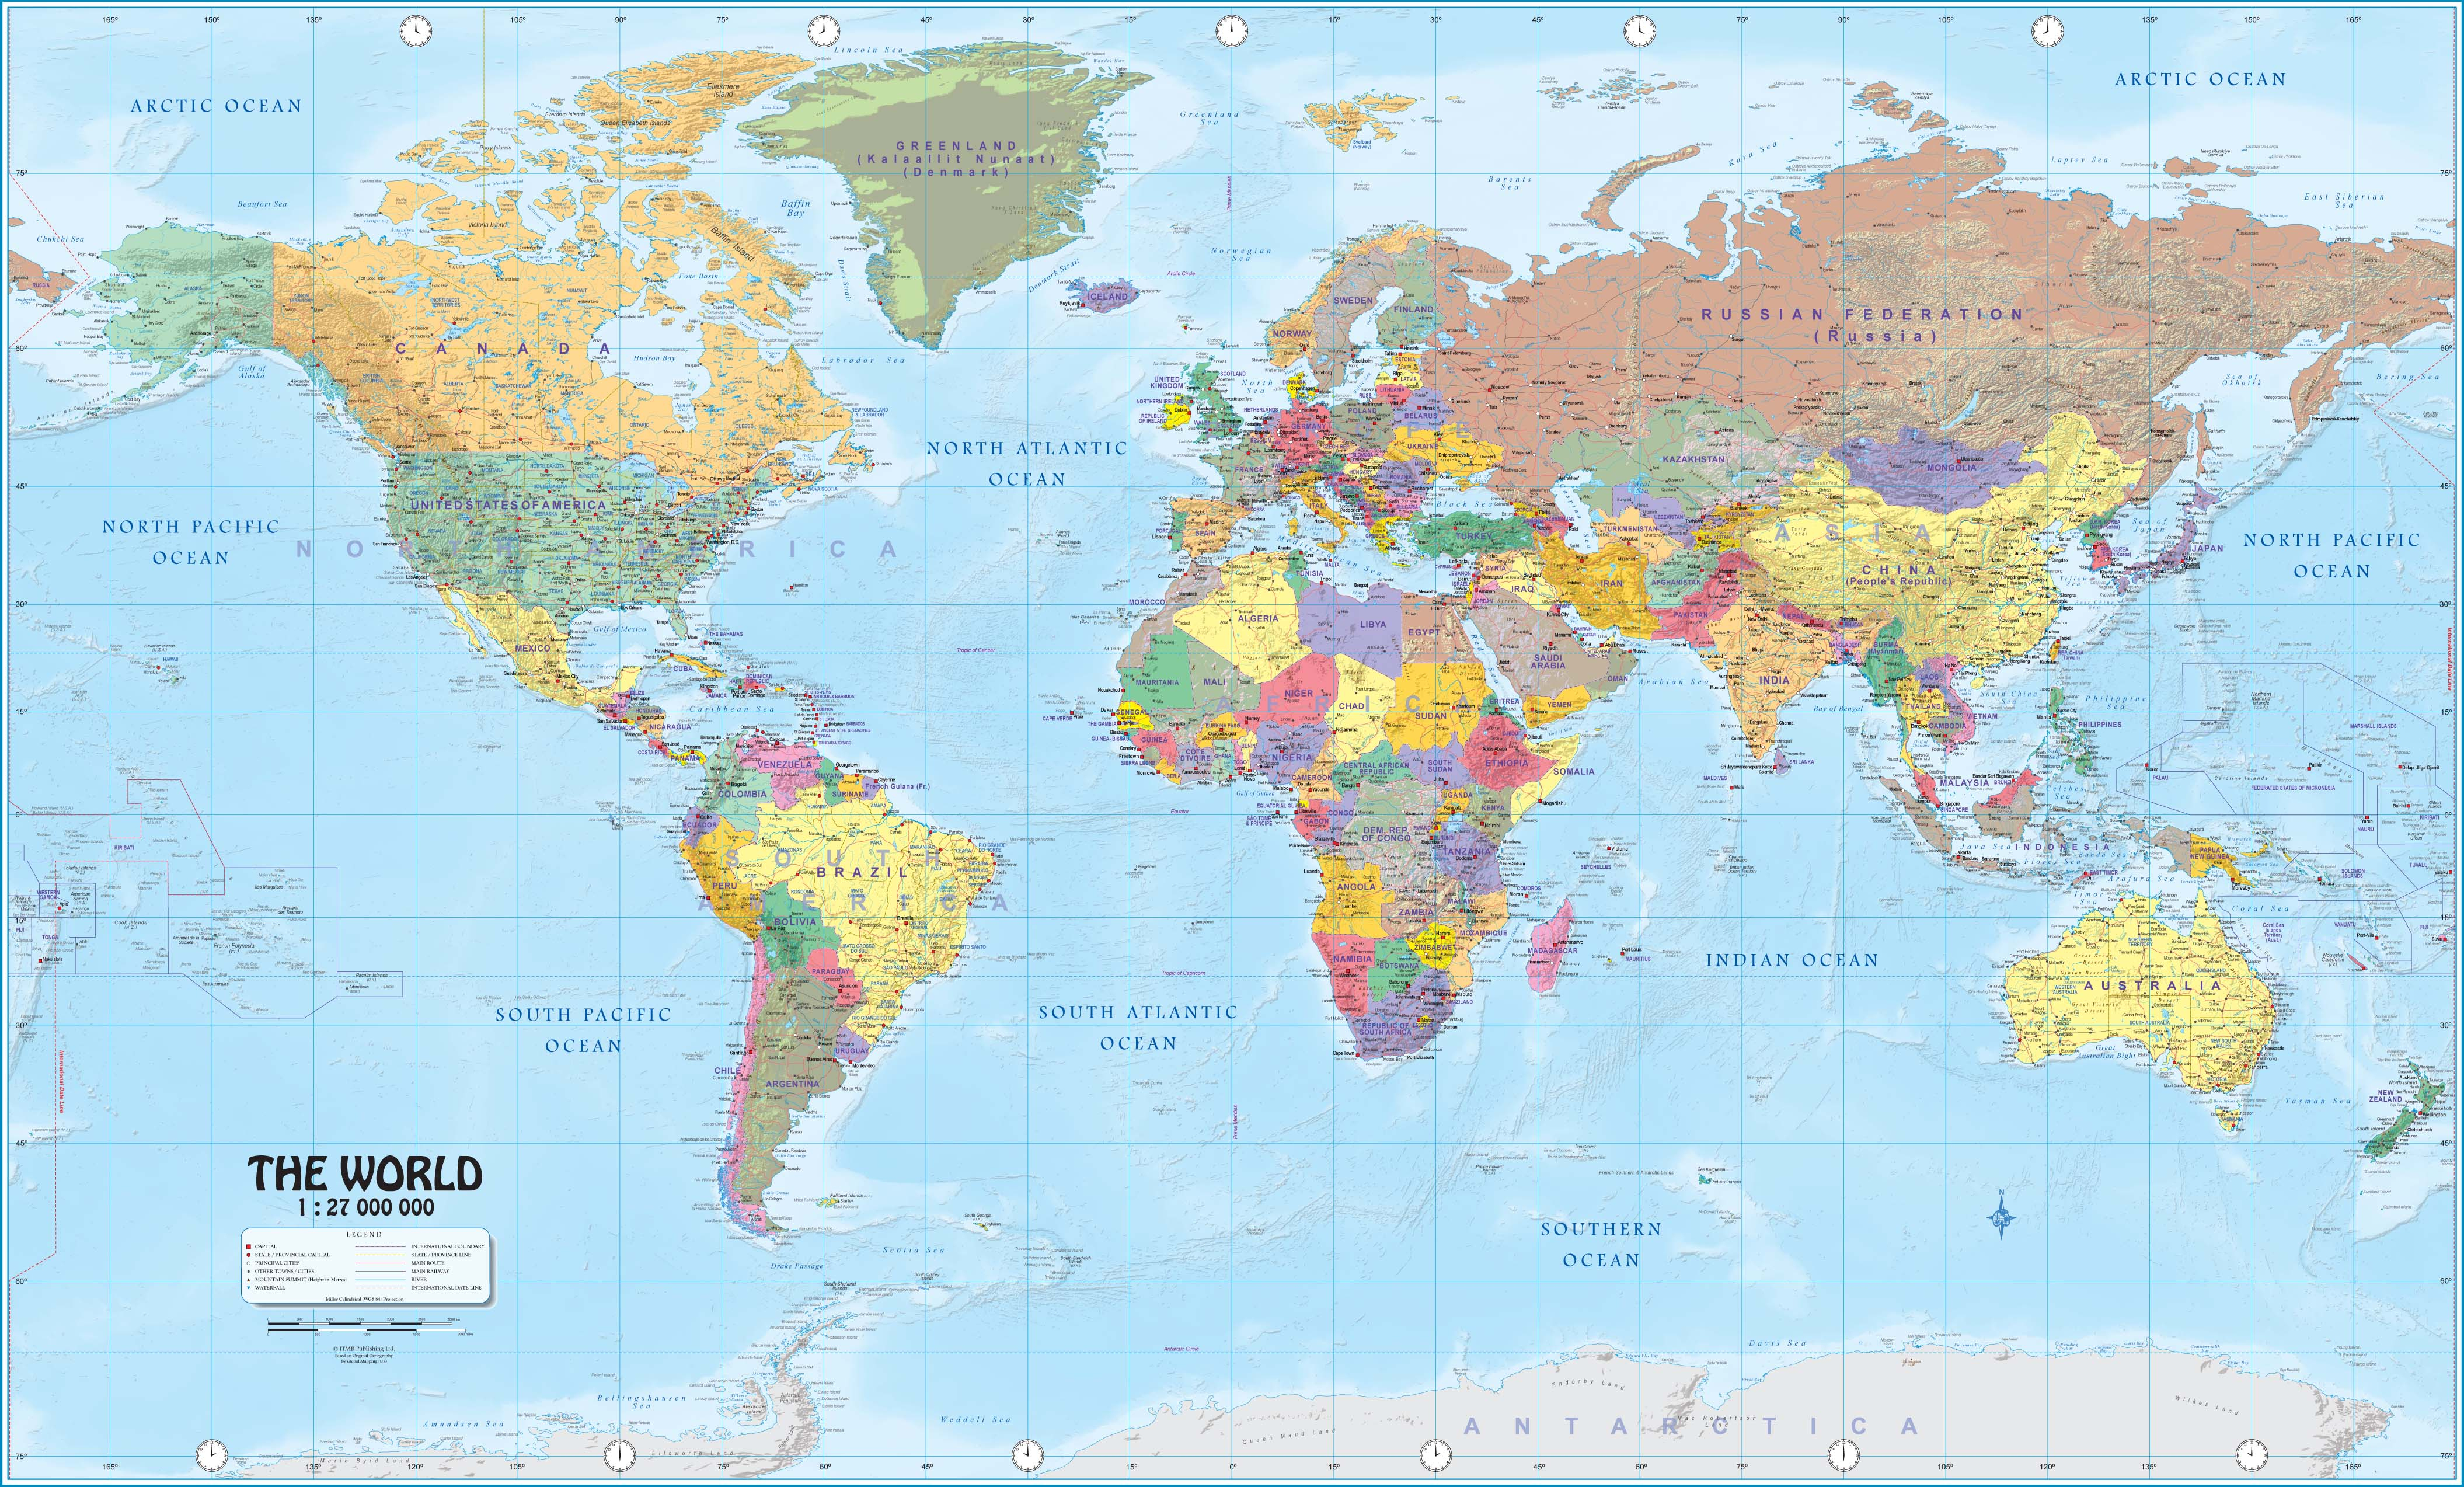 Wall Maps Of The World - National Geographic World Map Printable